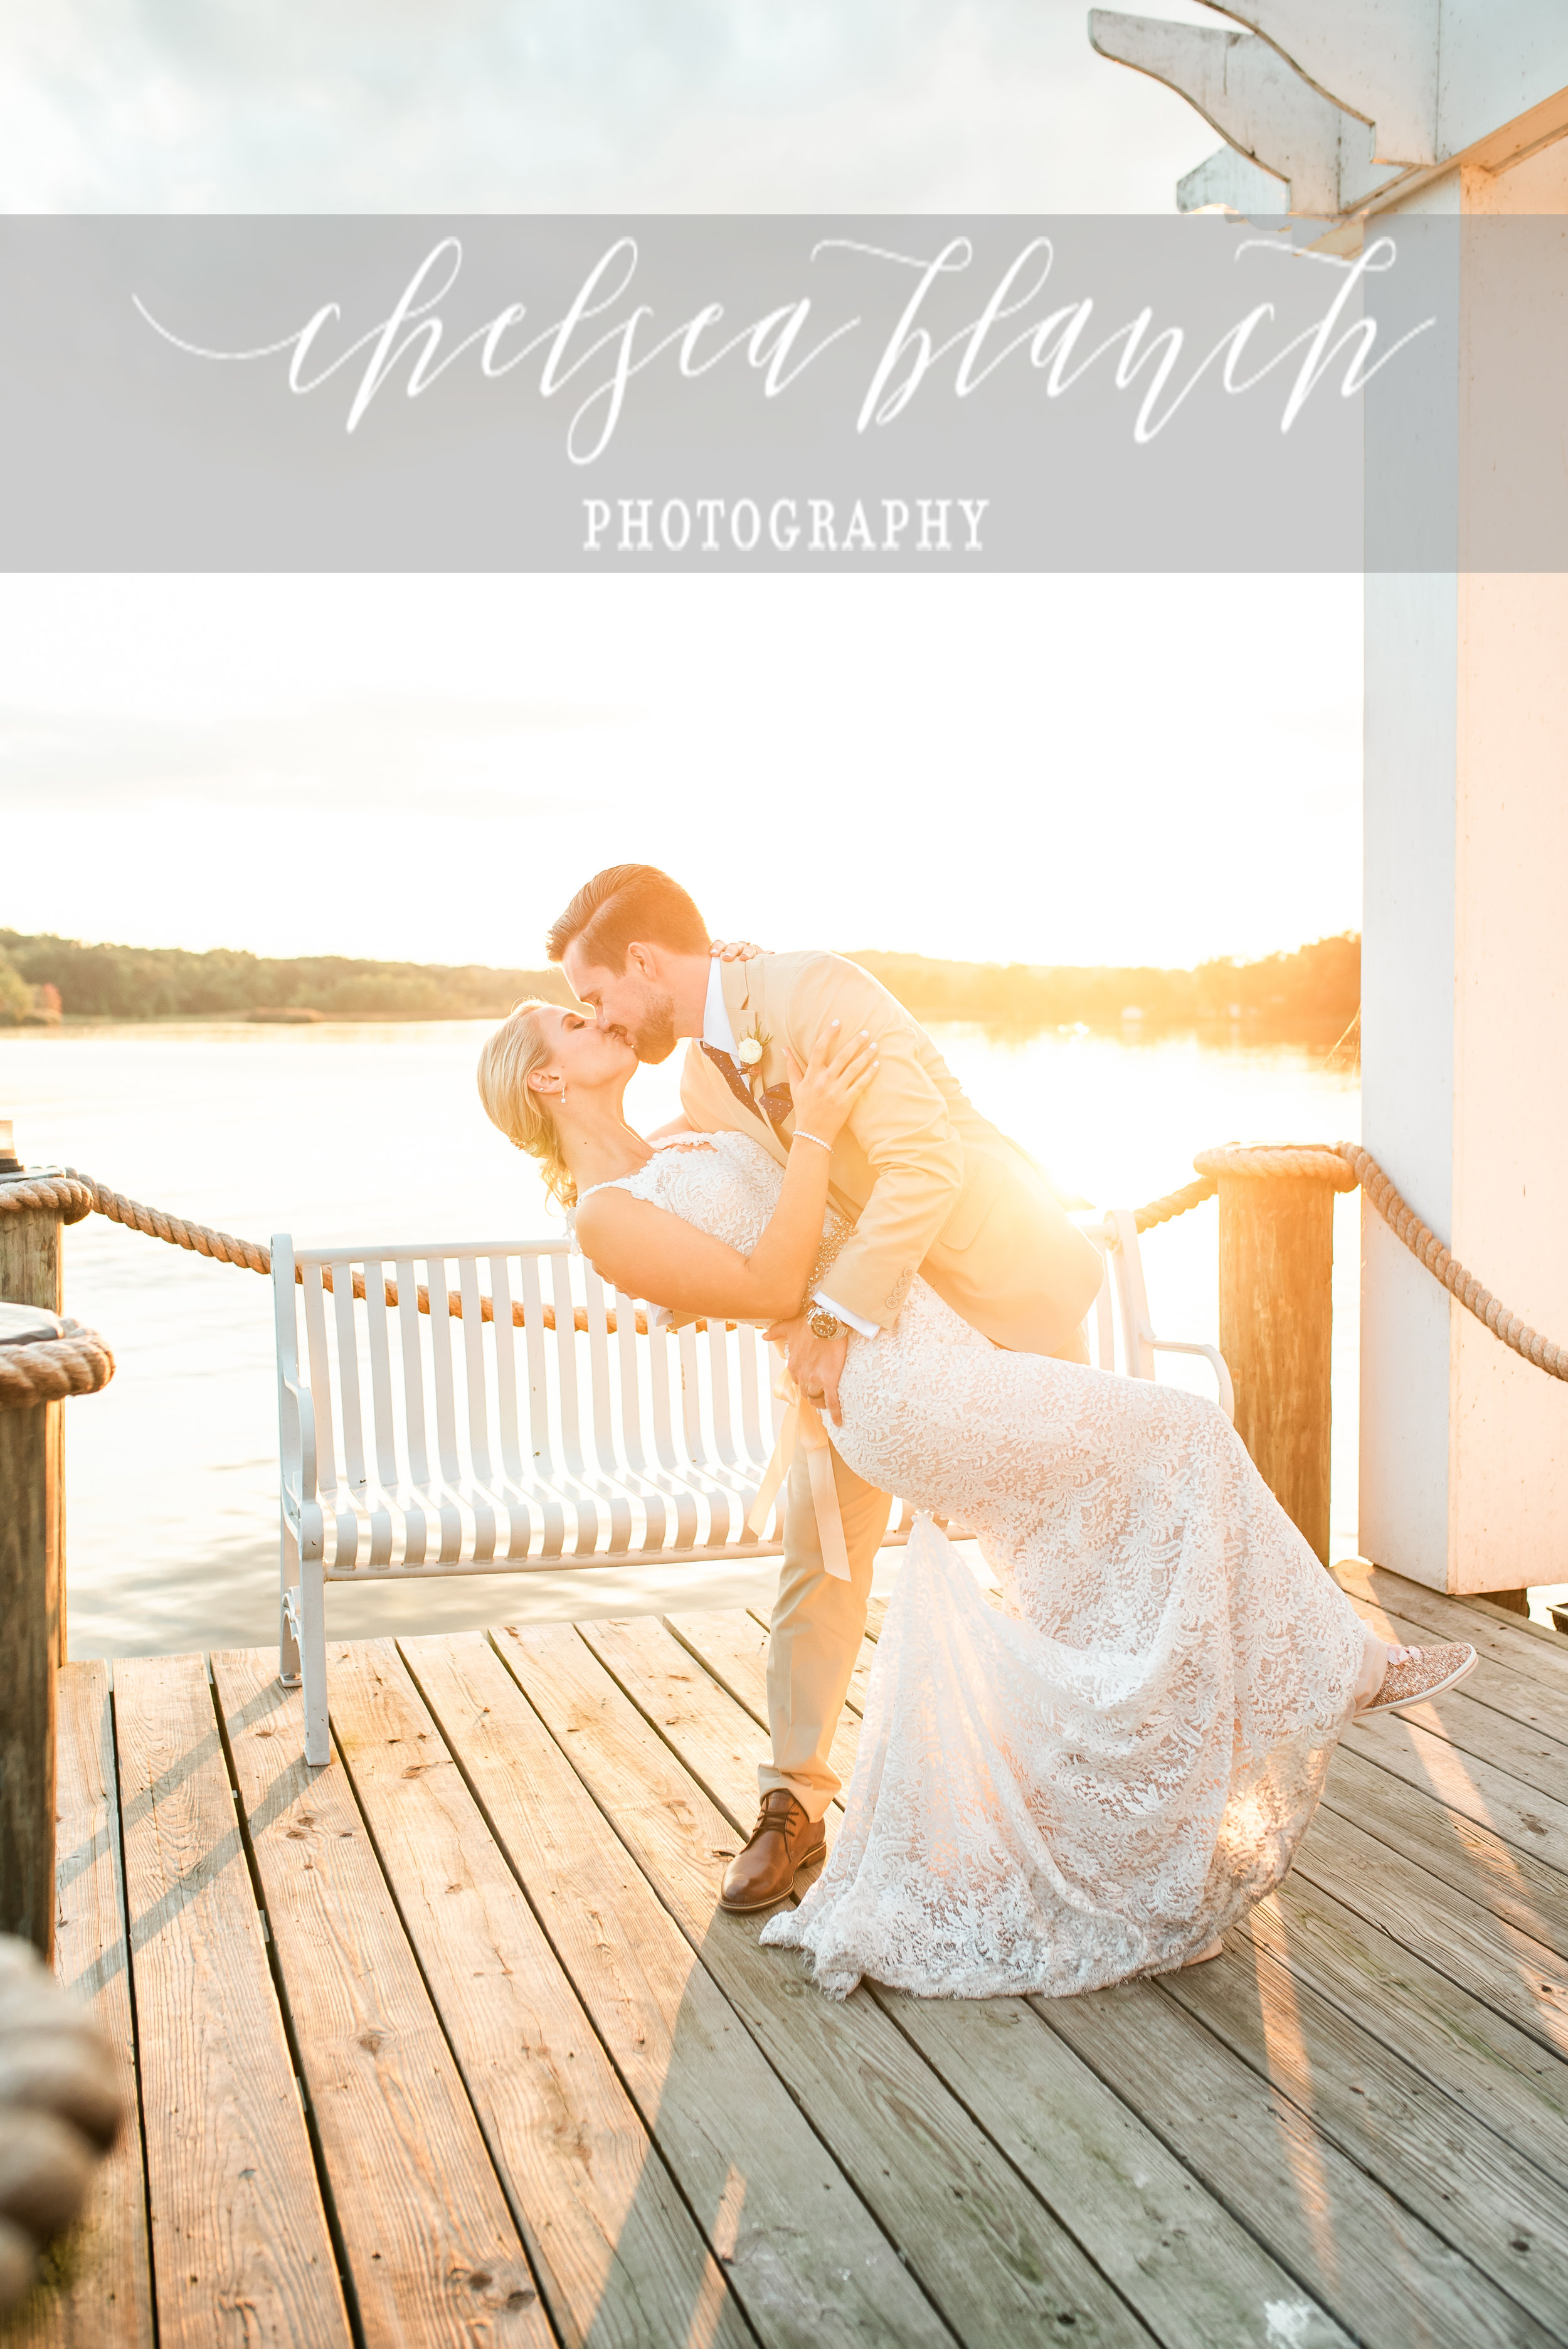 chelsea-blanch-photography-baltimore-maryland-wedding-photographer